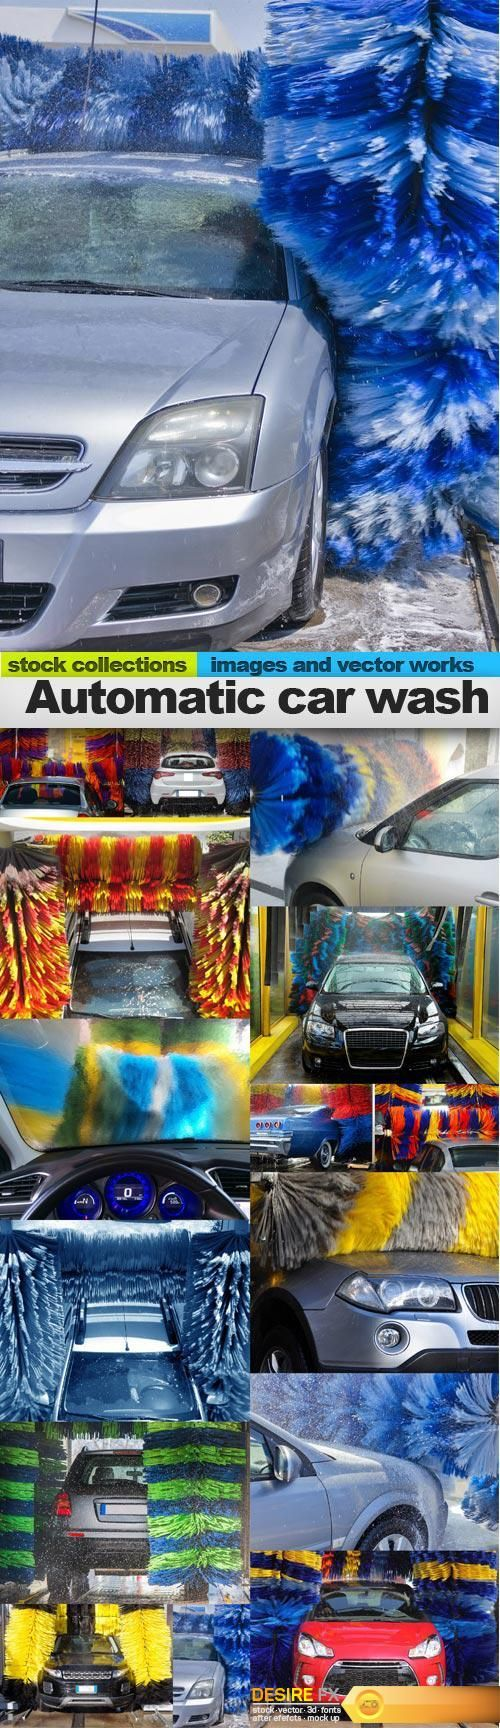 Automatic car wash,  15 x UHQ JPEG  http://www.desirefx.me/automatic-car-wash-15-x-uhq-jpeg/